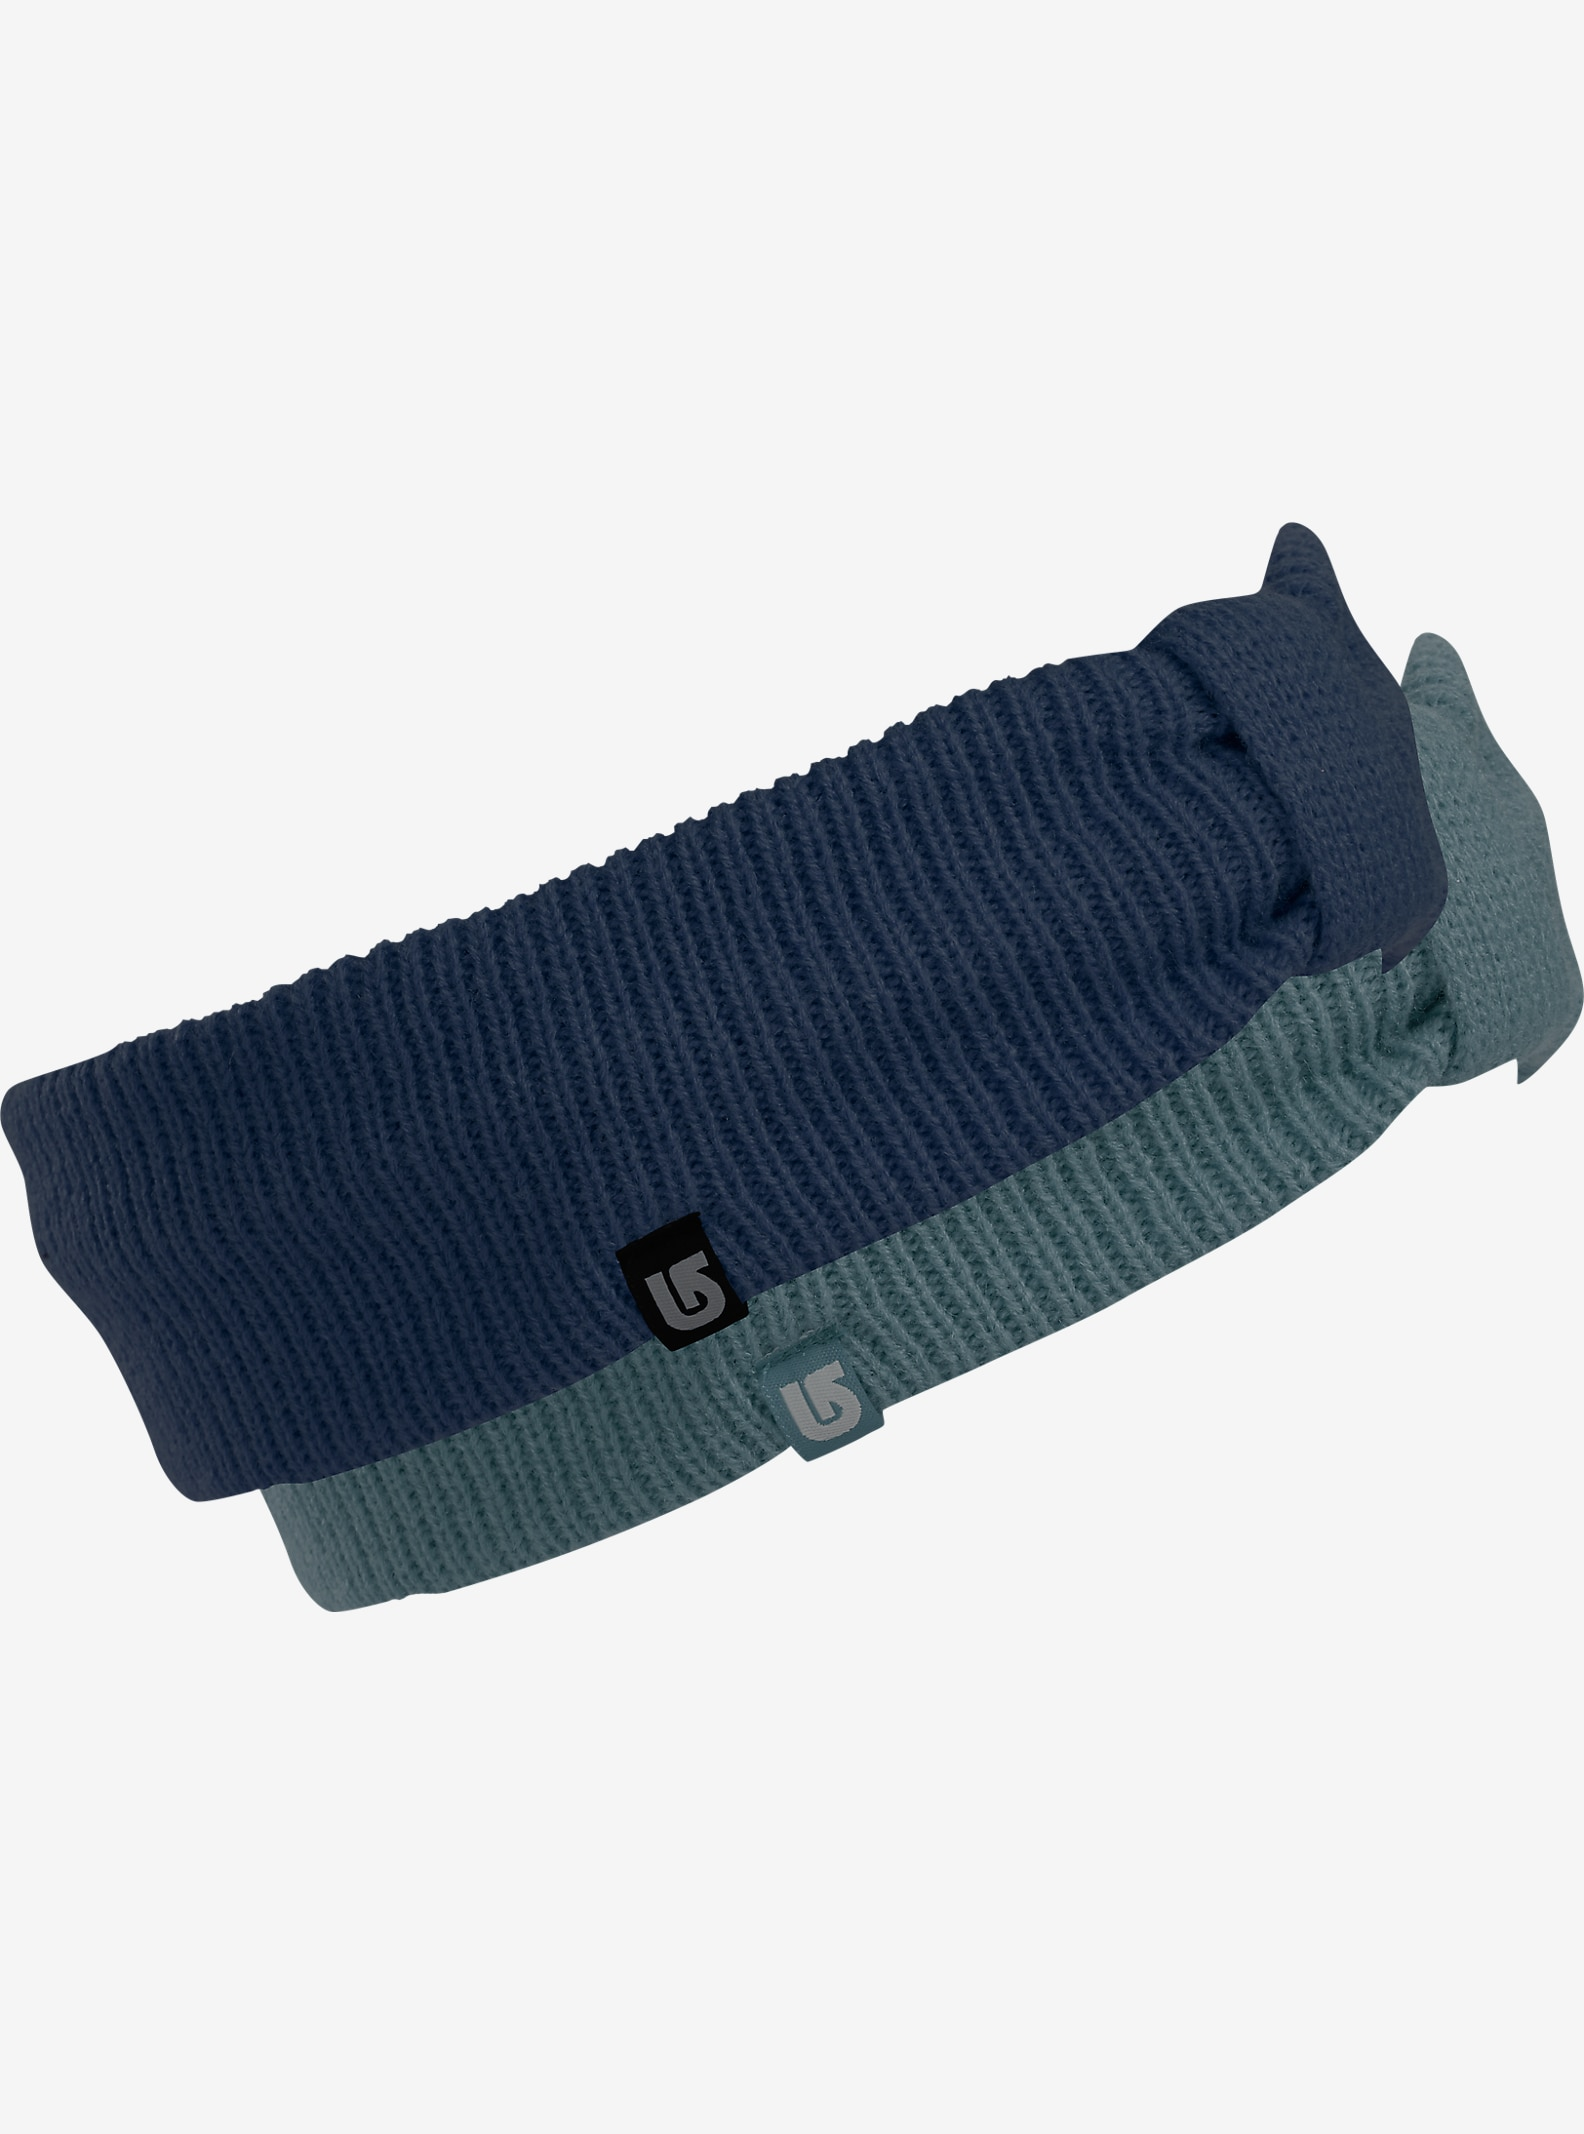 Burton Ashley Headband 2-Pack shown in Tundra / Mood Indigo